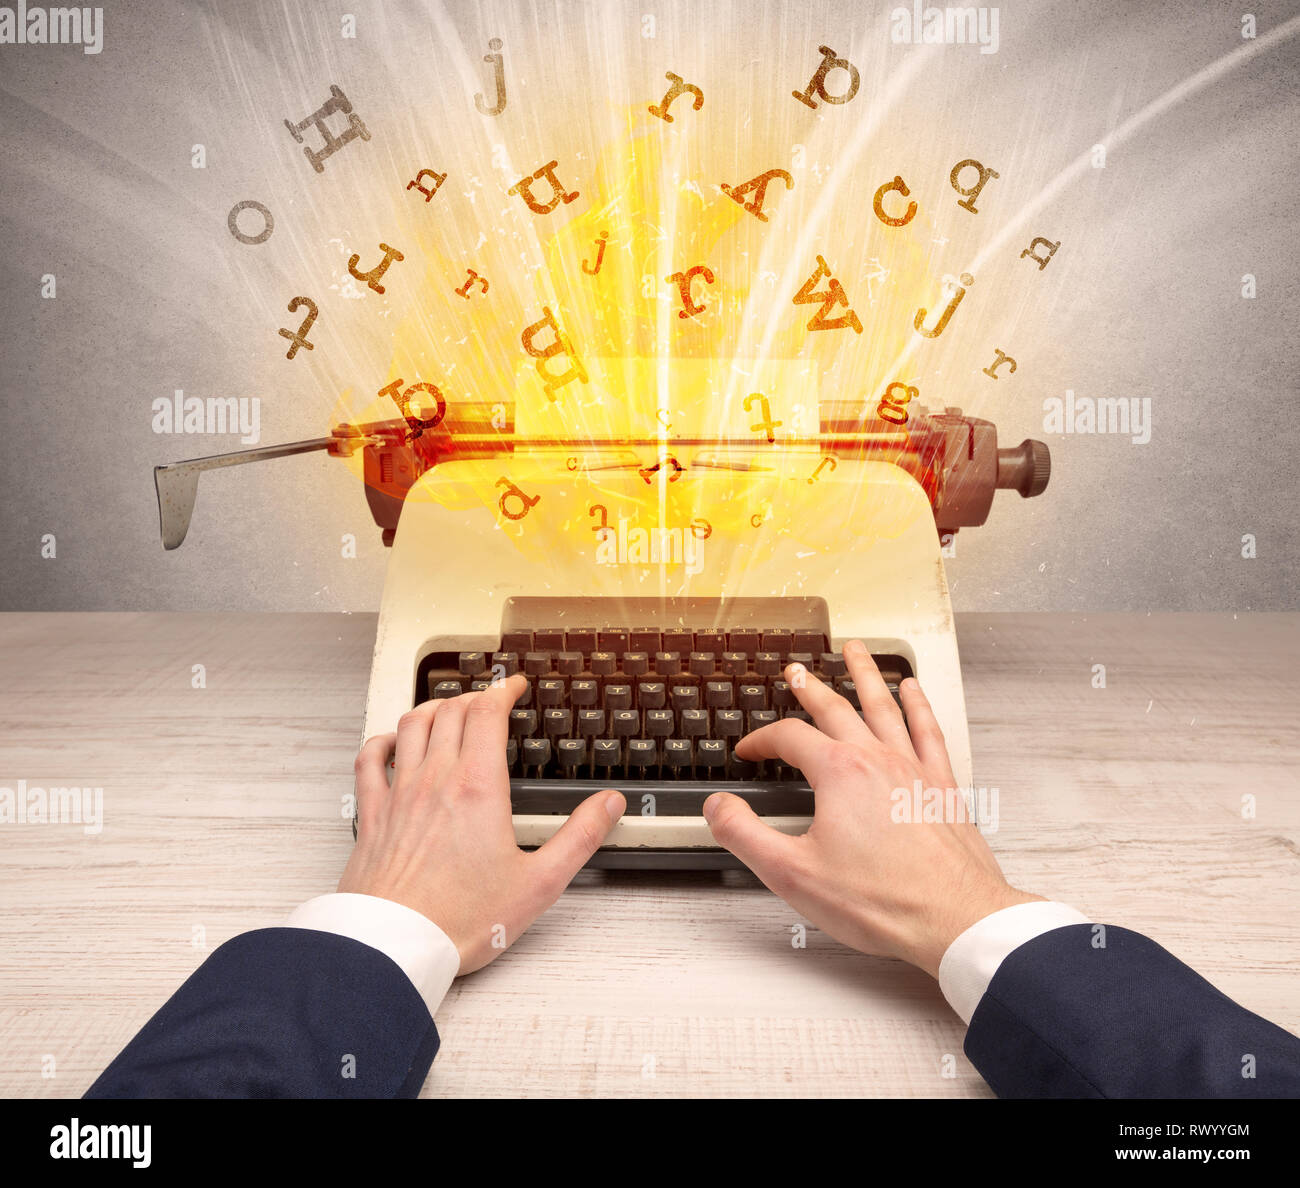 First person perspective image with exploding letters from a vintage typewriter concept  - Stock Image